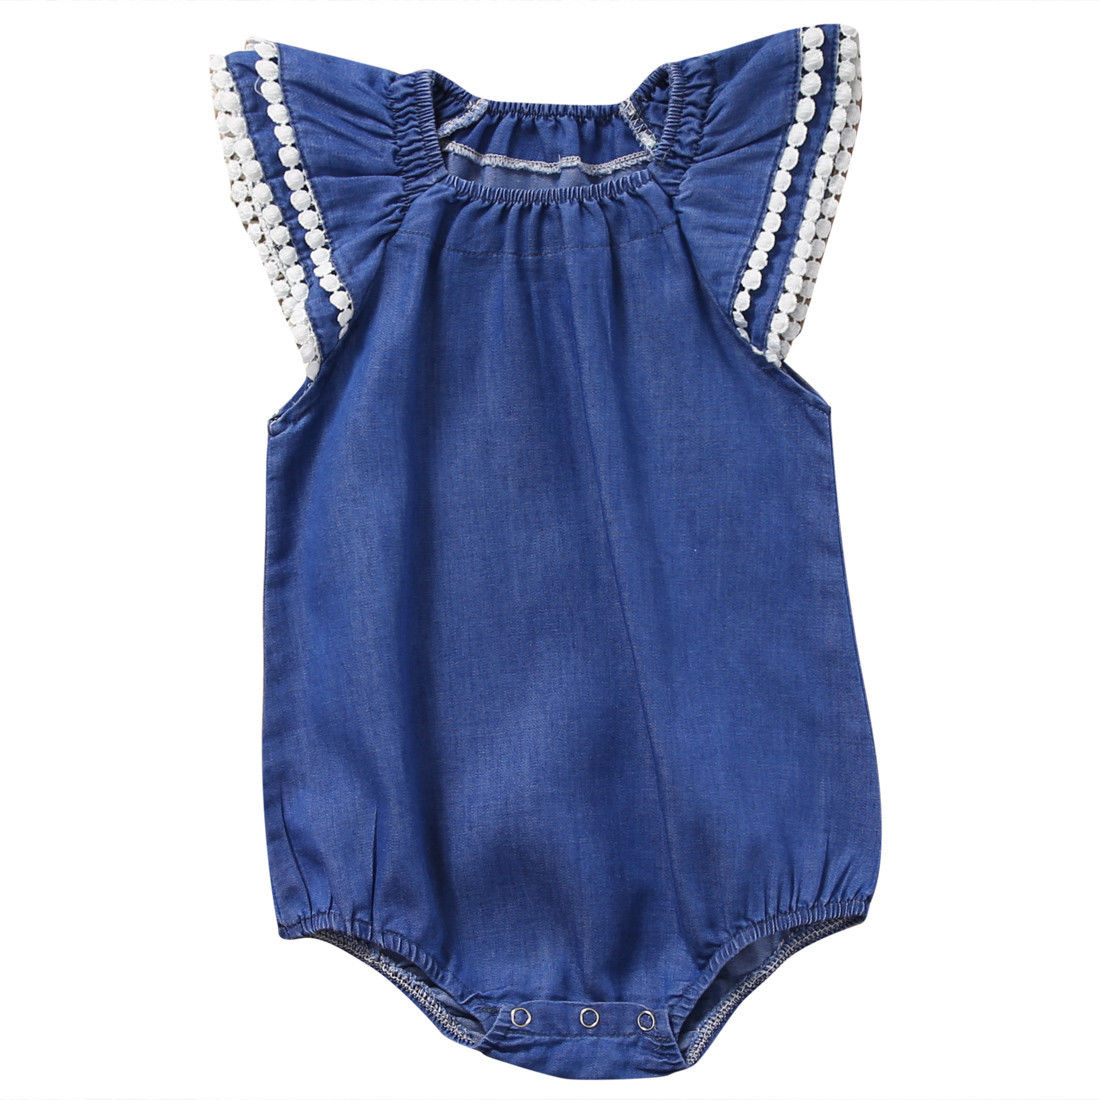 You searched for: denim baby romper! Etsy is the home to thousands of handmade, vintage, and one-of-a-kind products and gifts related to your search. No matter what you're looking for or where you are in the world, our global marketplace of sellers can help you .